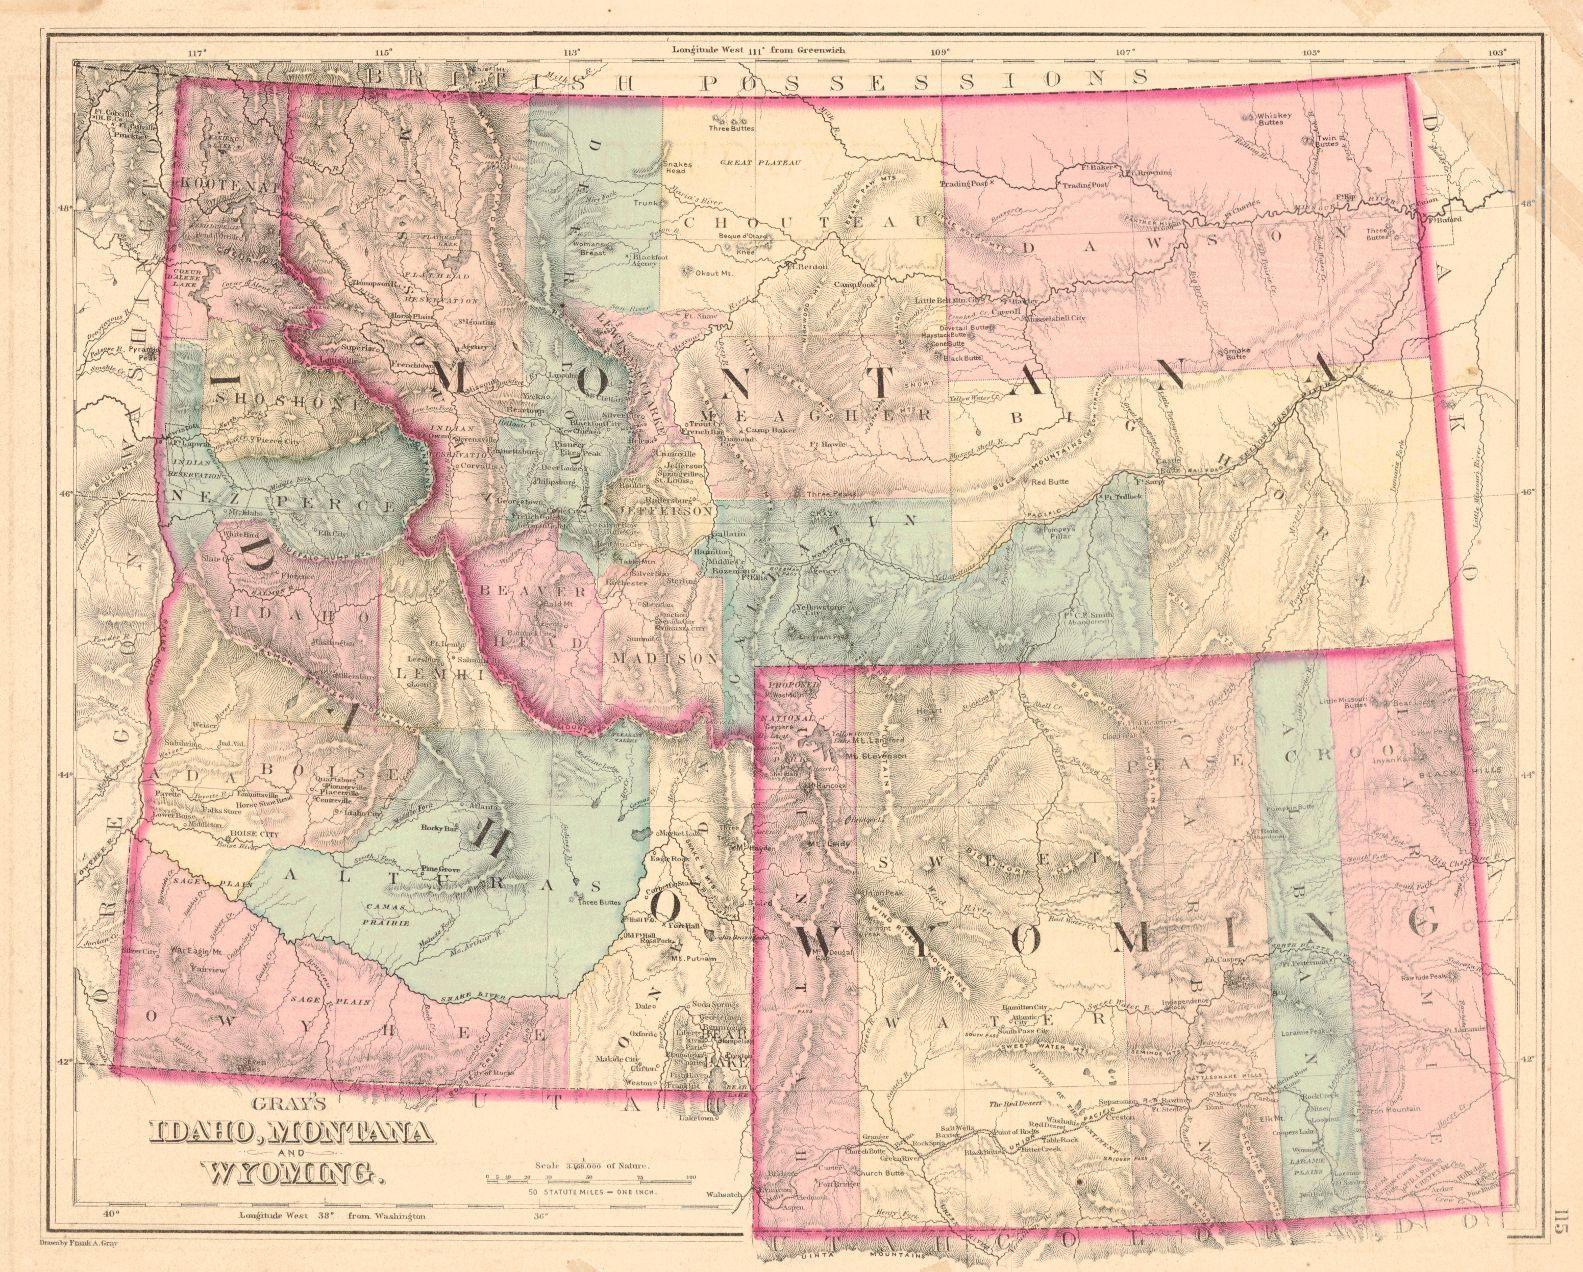 Map Antique Grays Idaho Montana And Wyoming OW Gray Son - Map of montana and wyoming